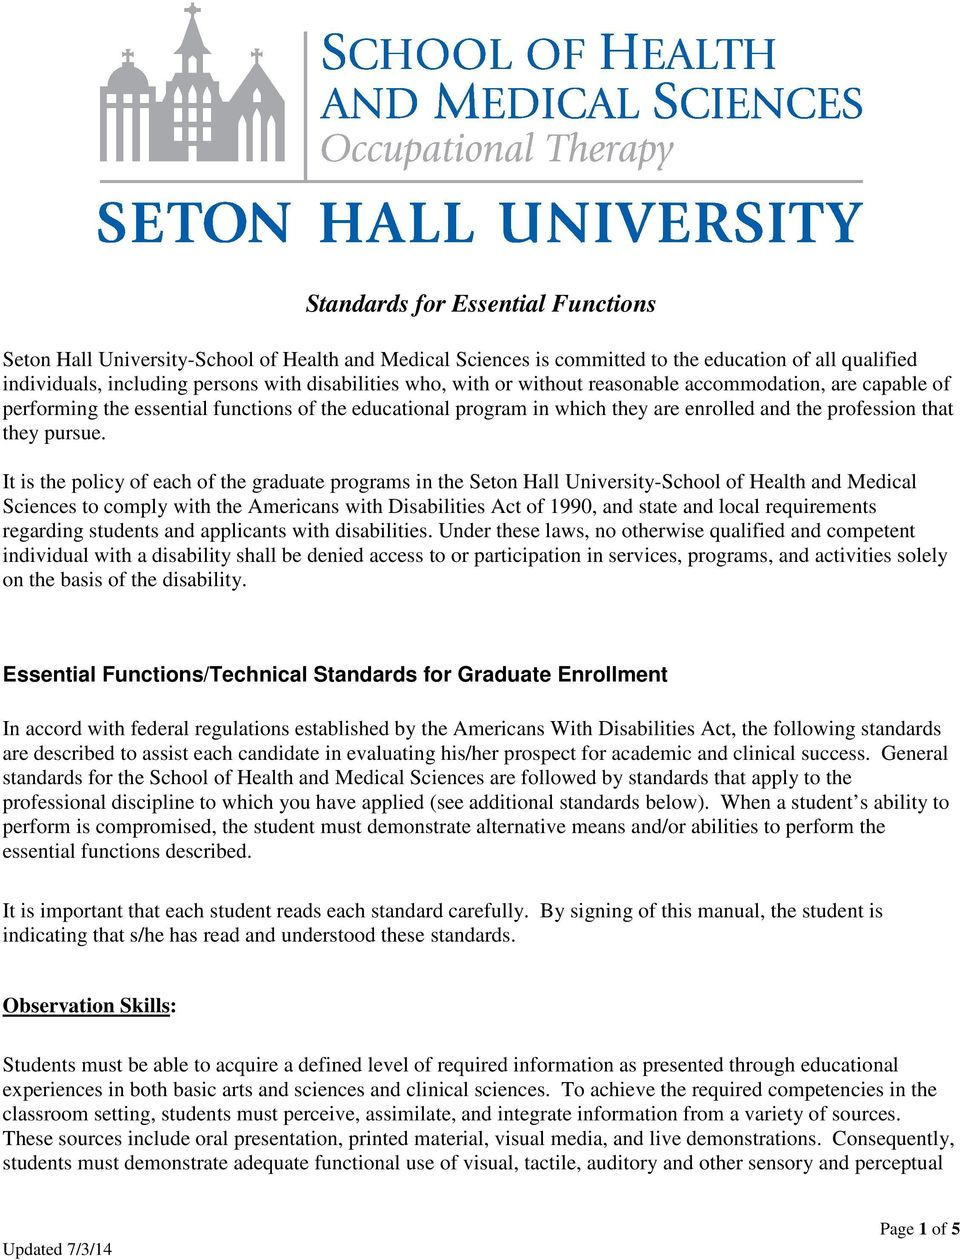 It is the policy of each of the graduate programs in the Seton Hall University-School of Health and Medical Sciences to comply with the Americans with Disabilities Act of 1990, and state and local